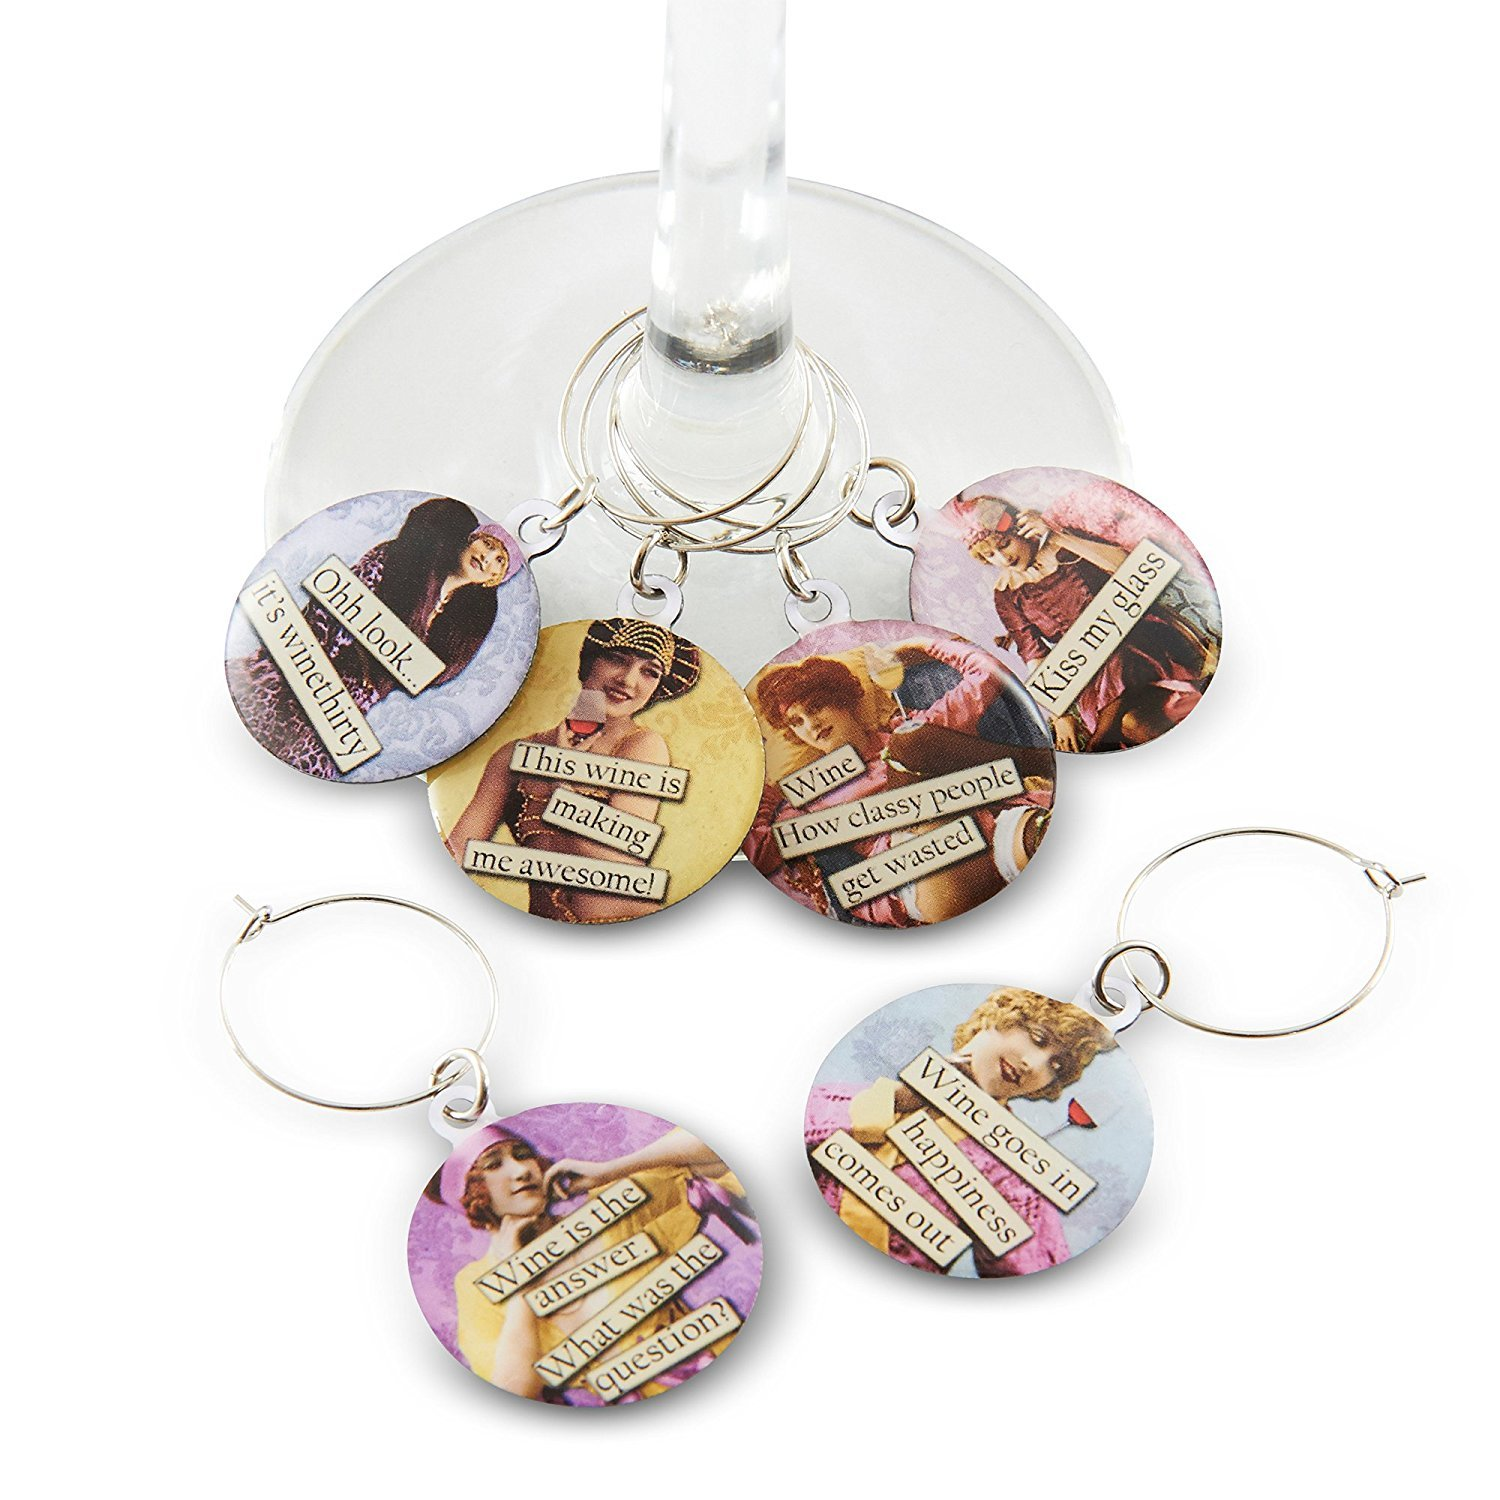 Funny Vintage Women Wine Glass Charms - Set of 6 Wine Tags. Always know which glass is yours with these wine markers! Savvy Design Store COMIN18JU055497